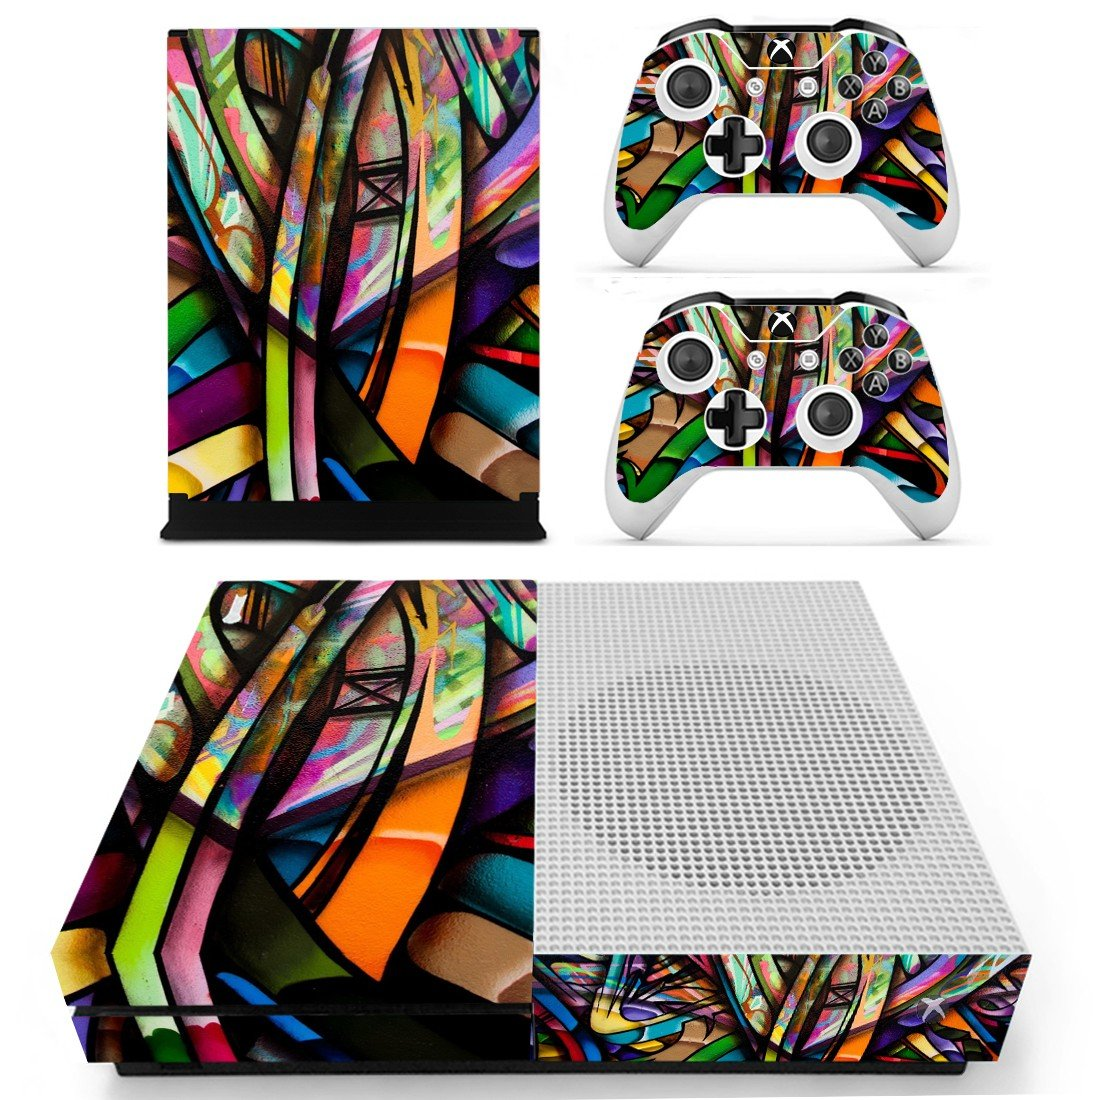 Colorful anime skin decal for Xbox one S console and controllers